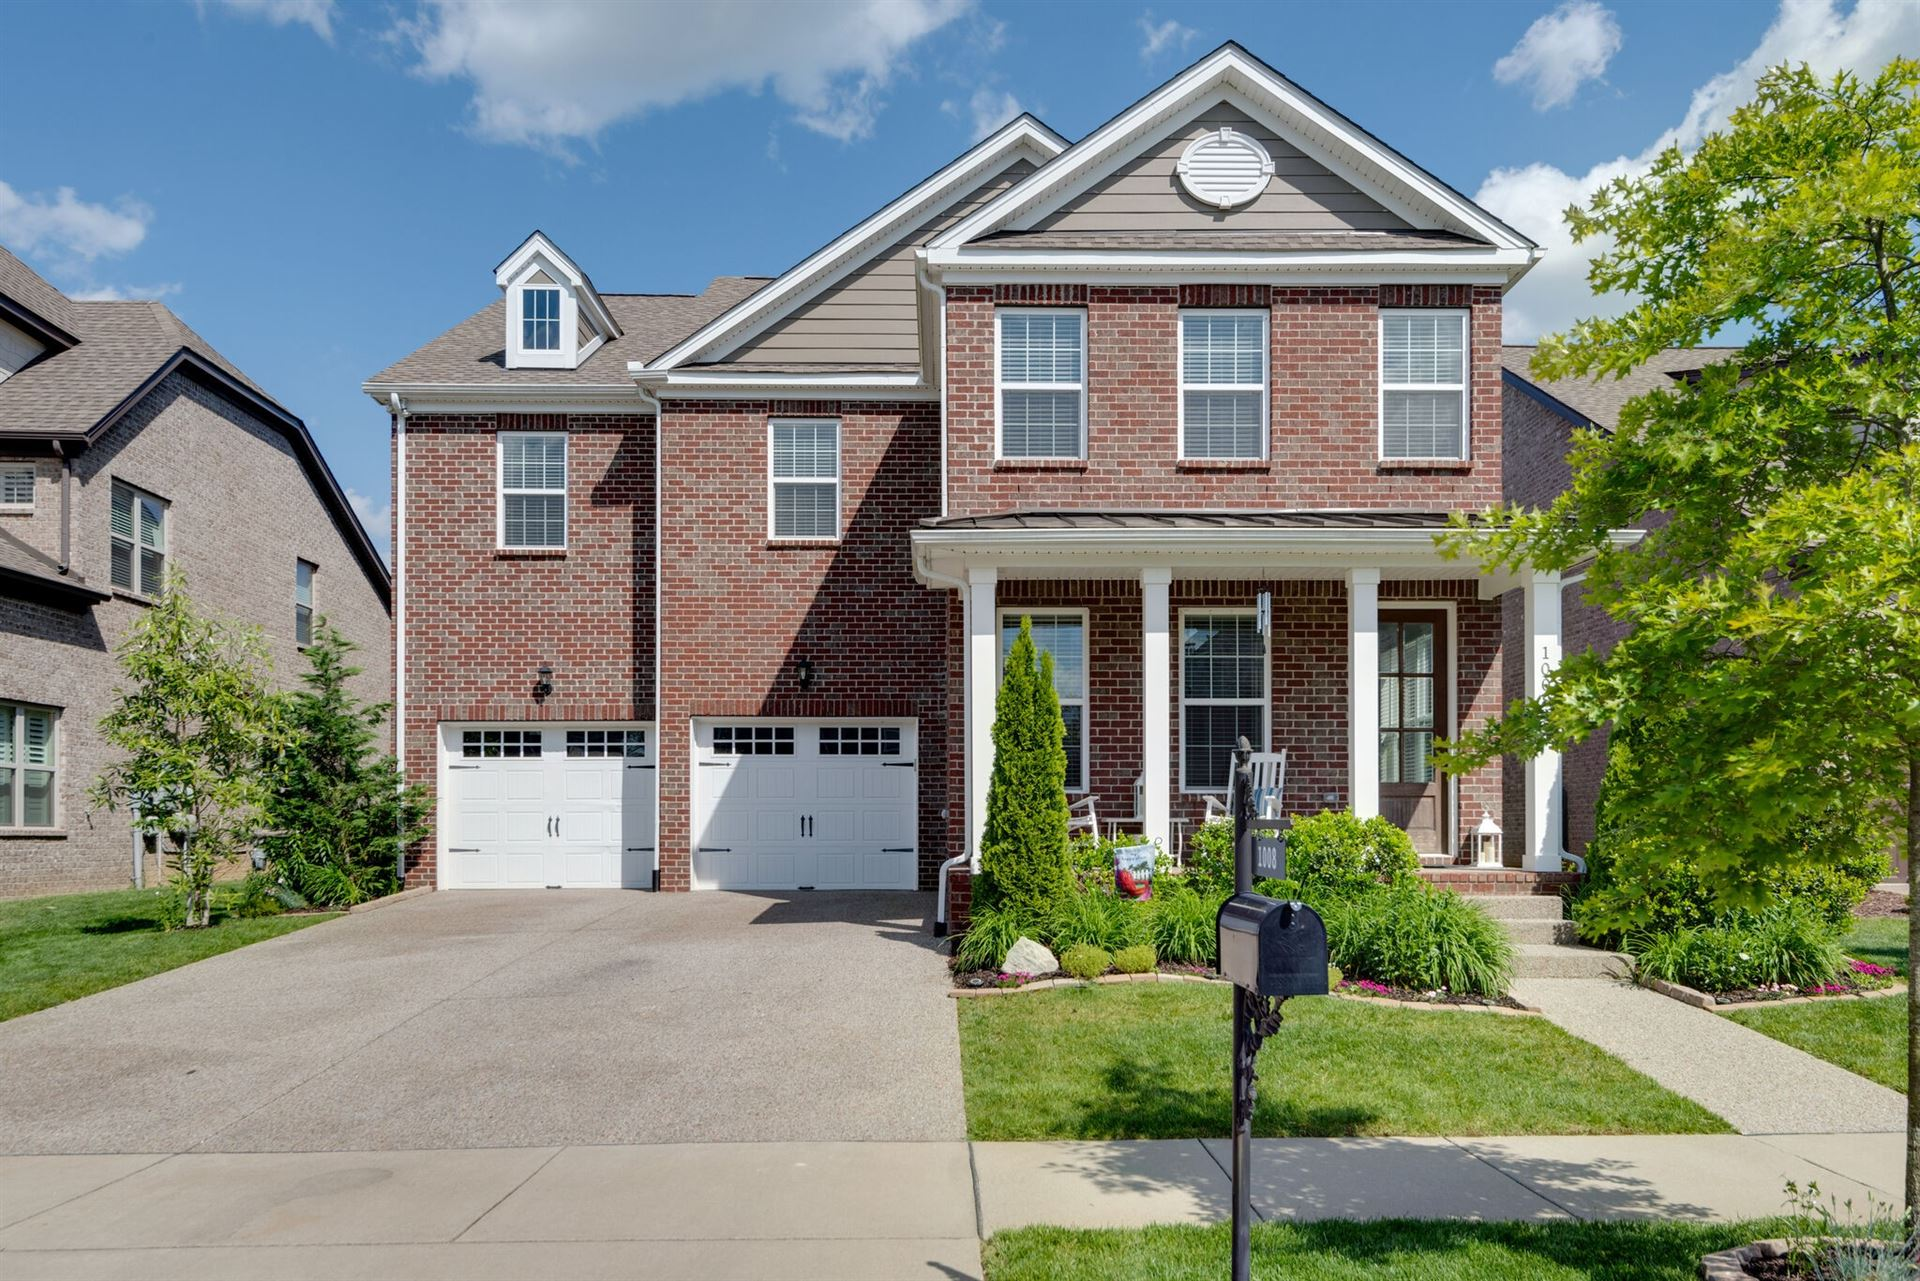 Photo of 1008 Reese Dr, Franklin, TN 37069 (MLS # 2252345)